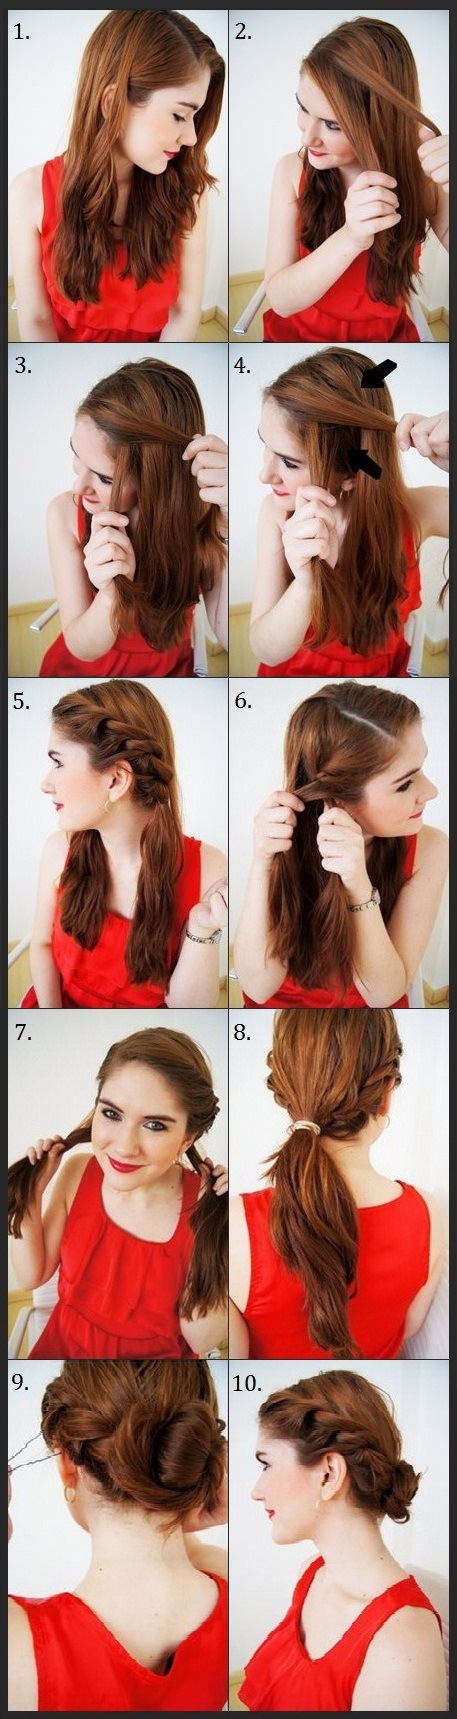 Hairstyles for Hot Summer Days